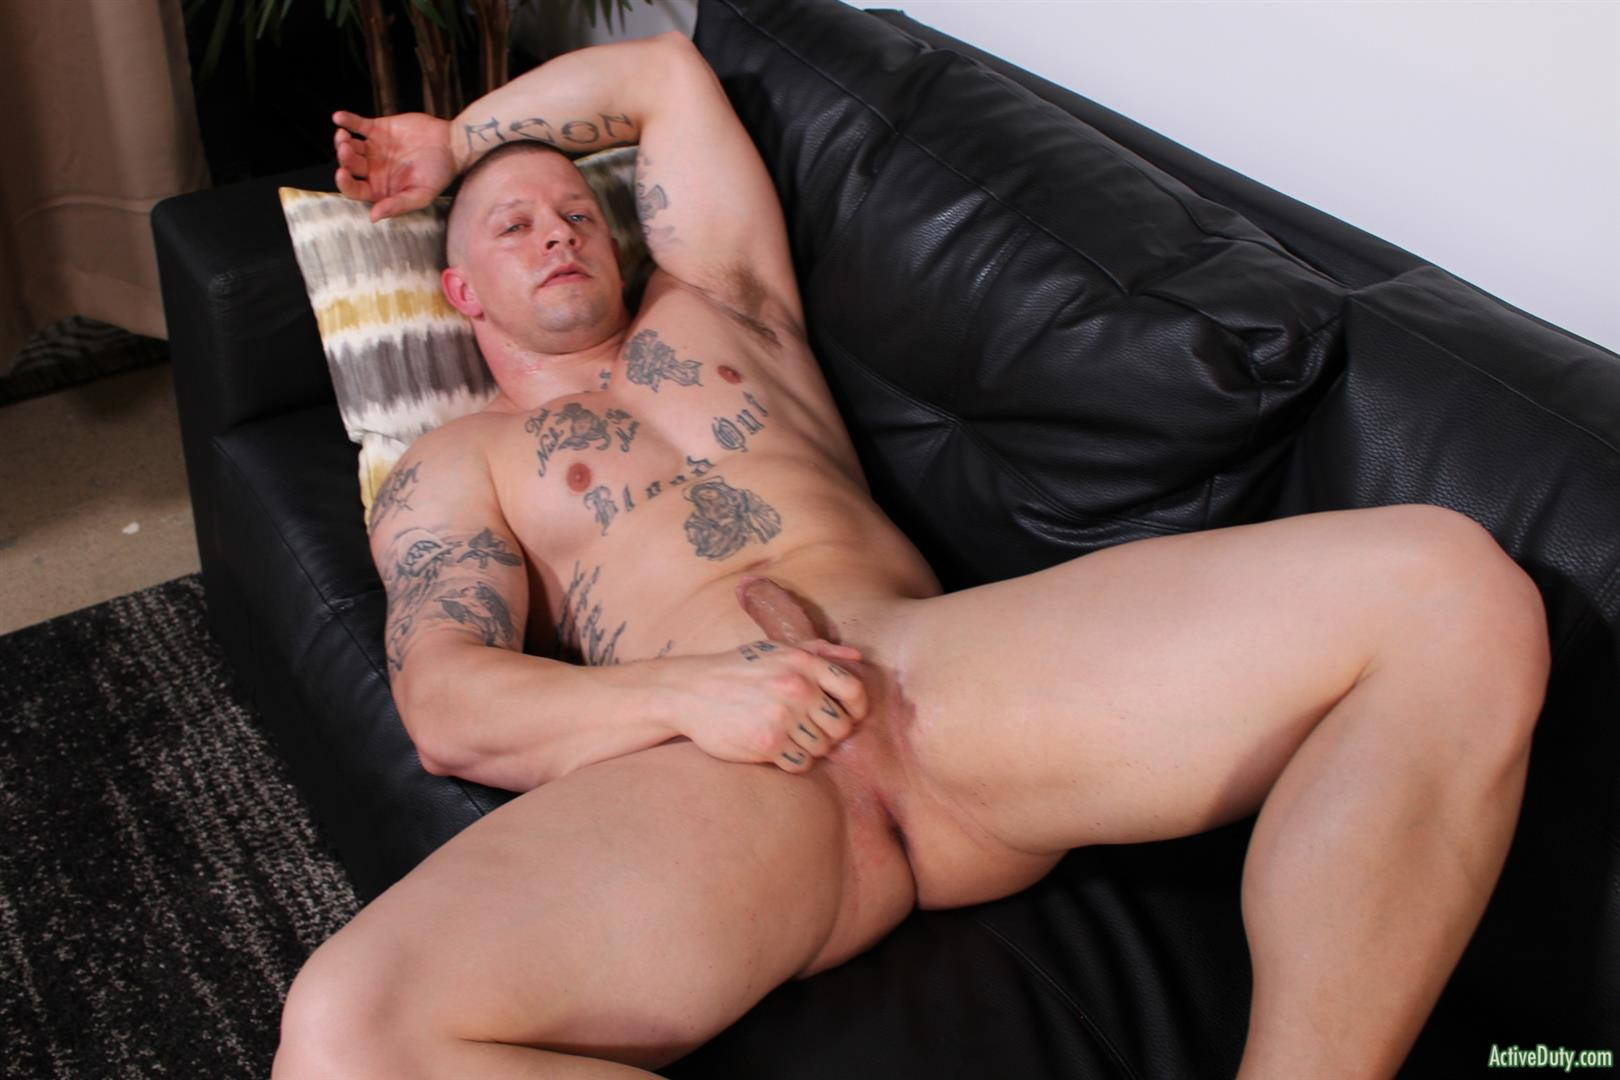 Active-Duty-Owen-Steal-Naked-Muscular-Marine-Jerking-Off-Big-Cock-13 Naked Hung Muscular Marine Jerks His Big Hard Cock